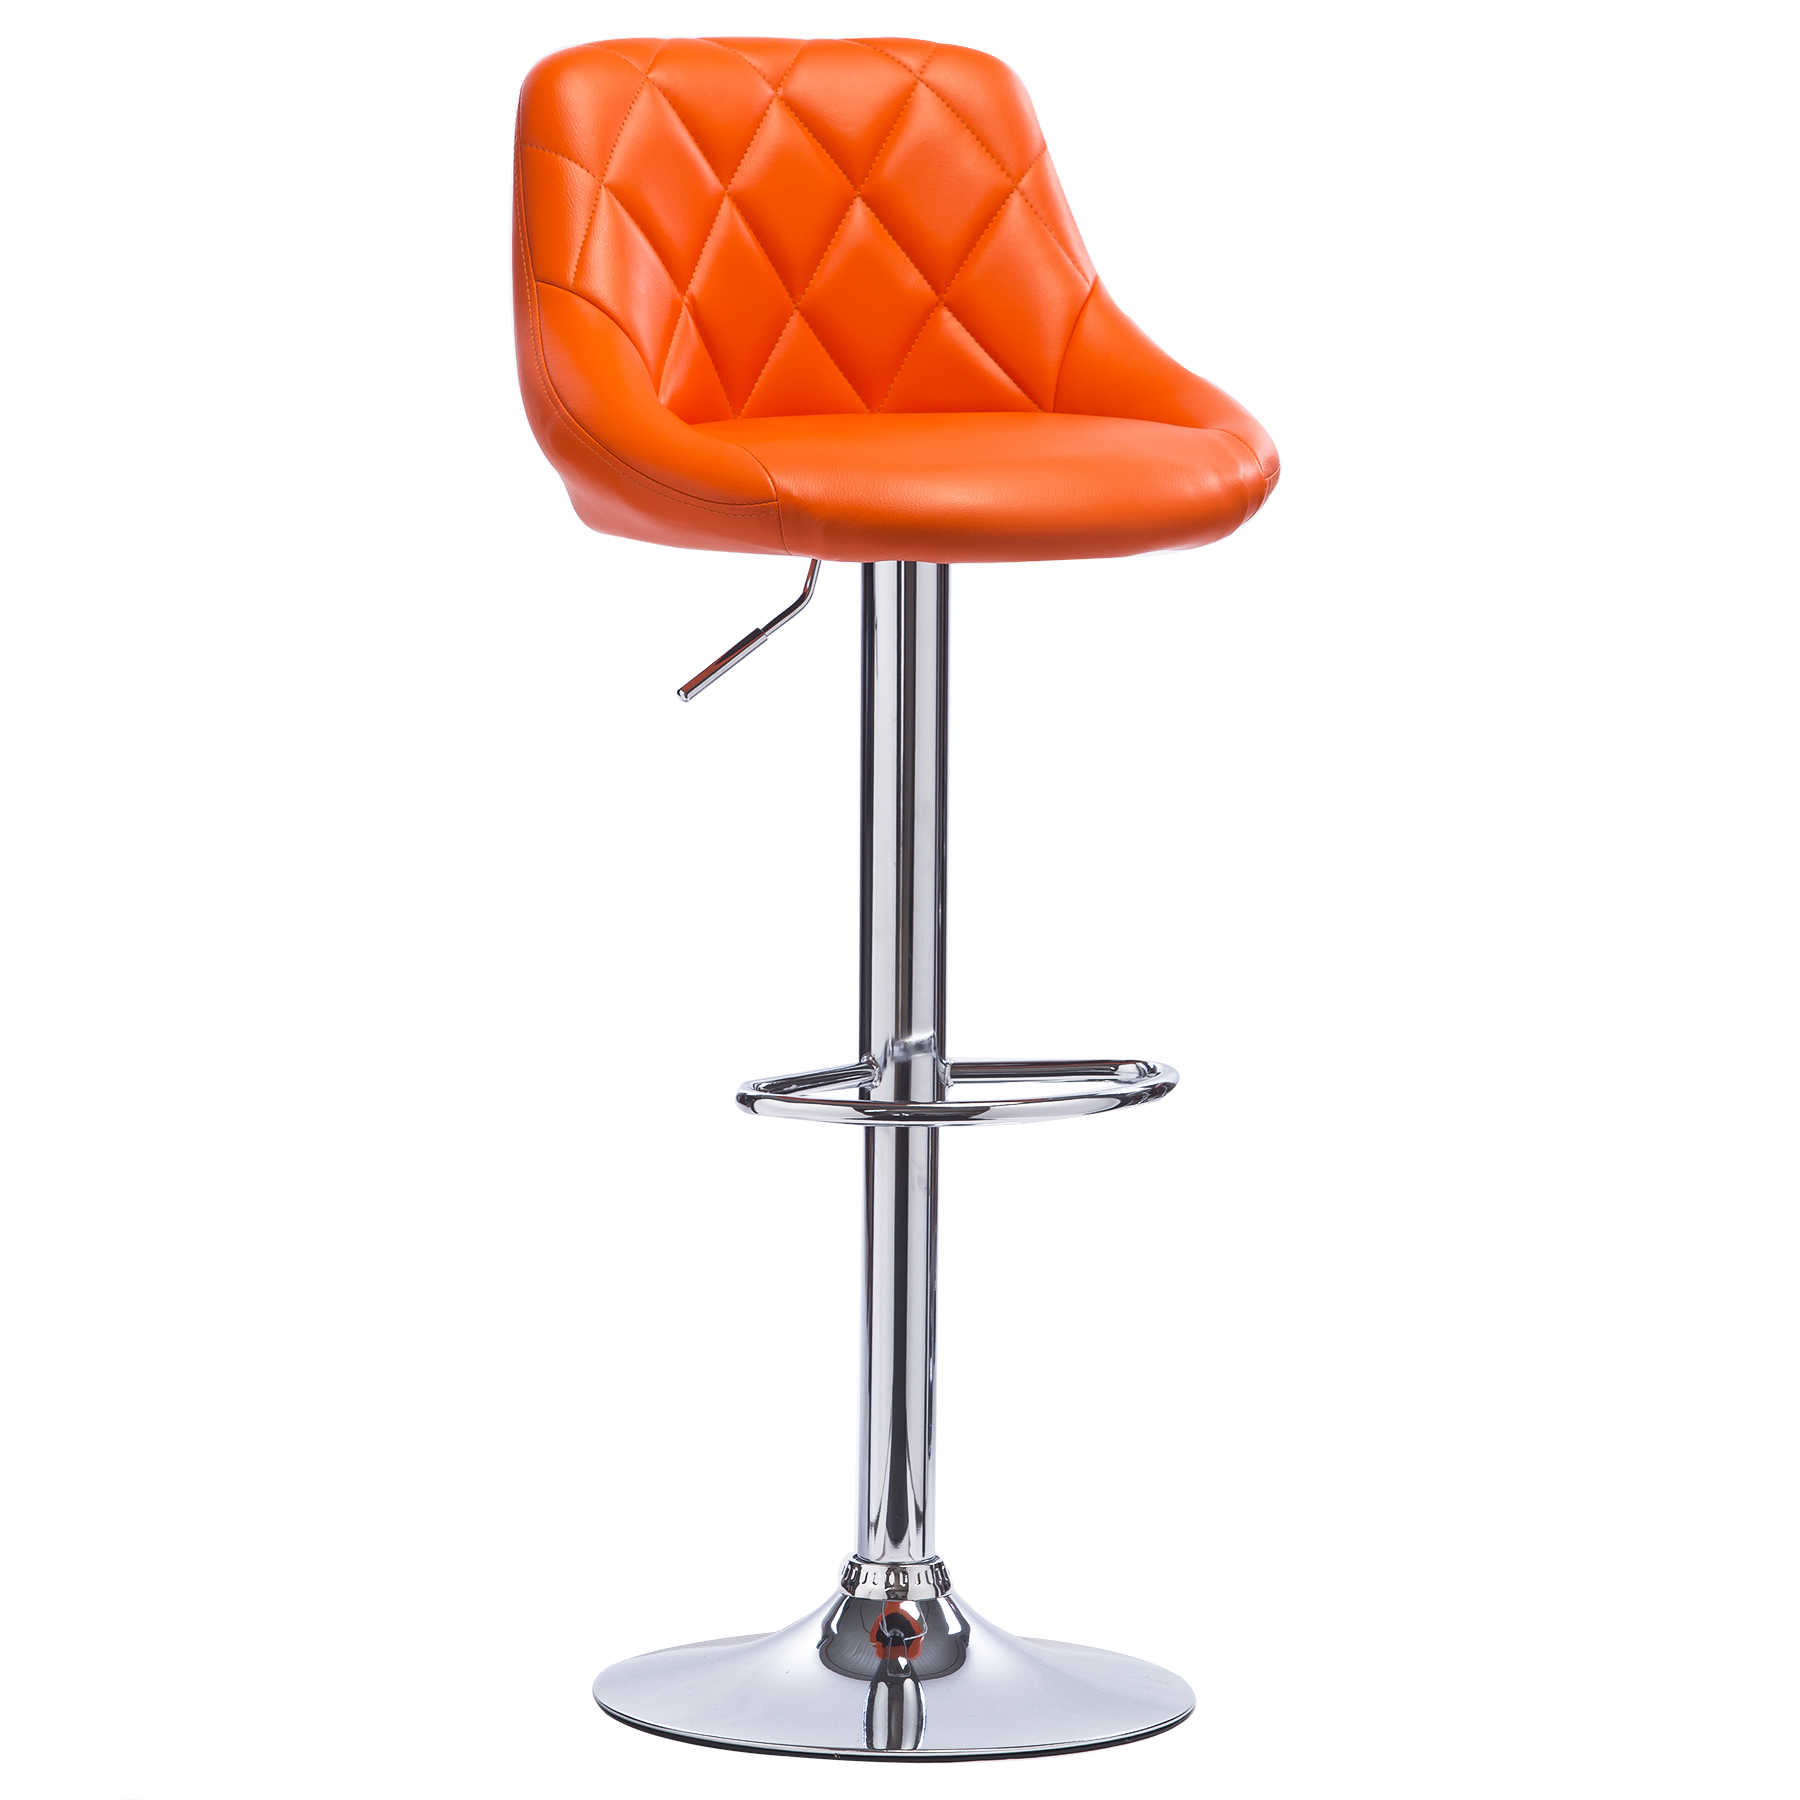 1 Pcs Bar Stools Swivel Kitchen Breakfast Stool Chair Chrome Faux Leather U015 Ebay